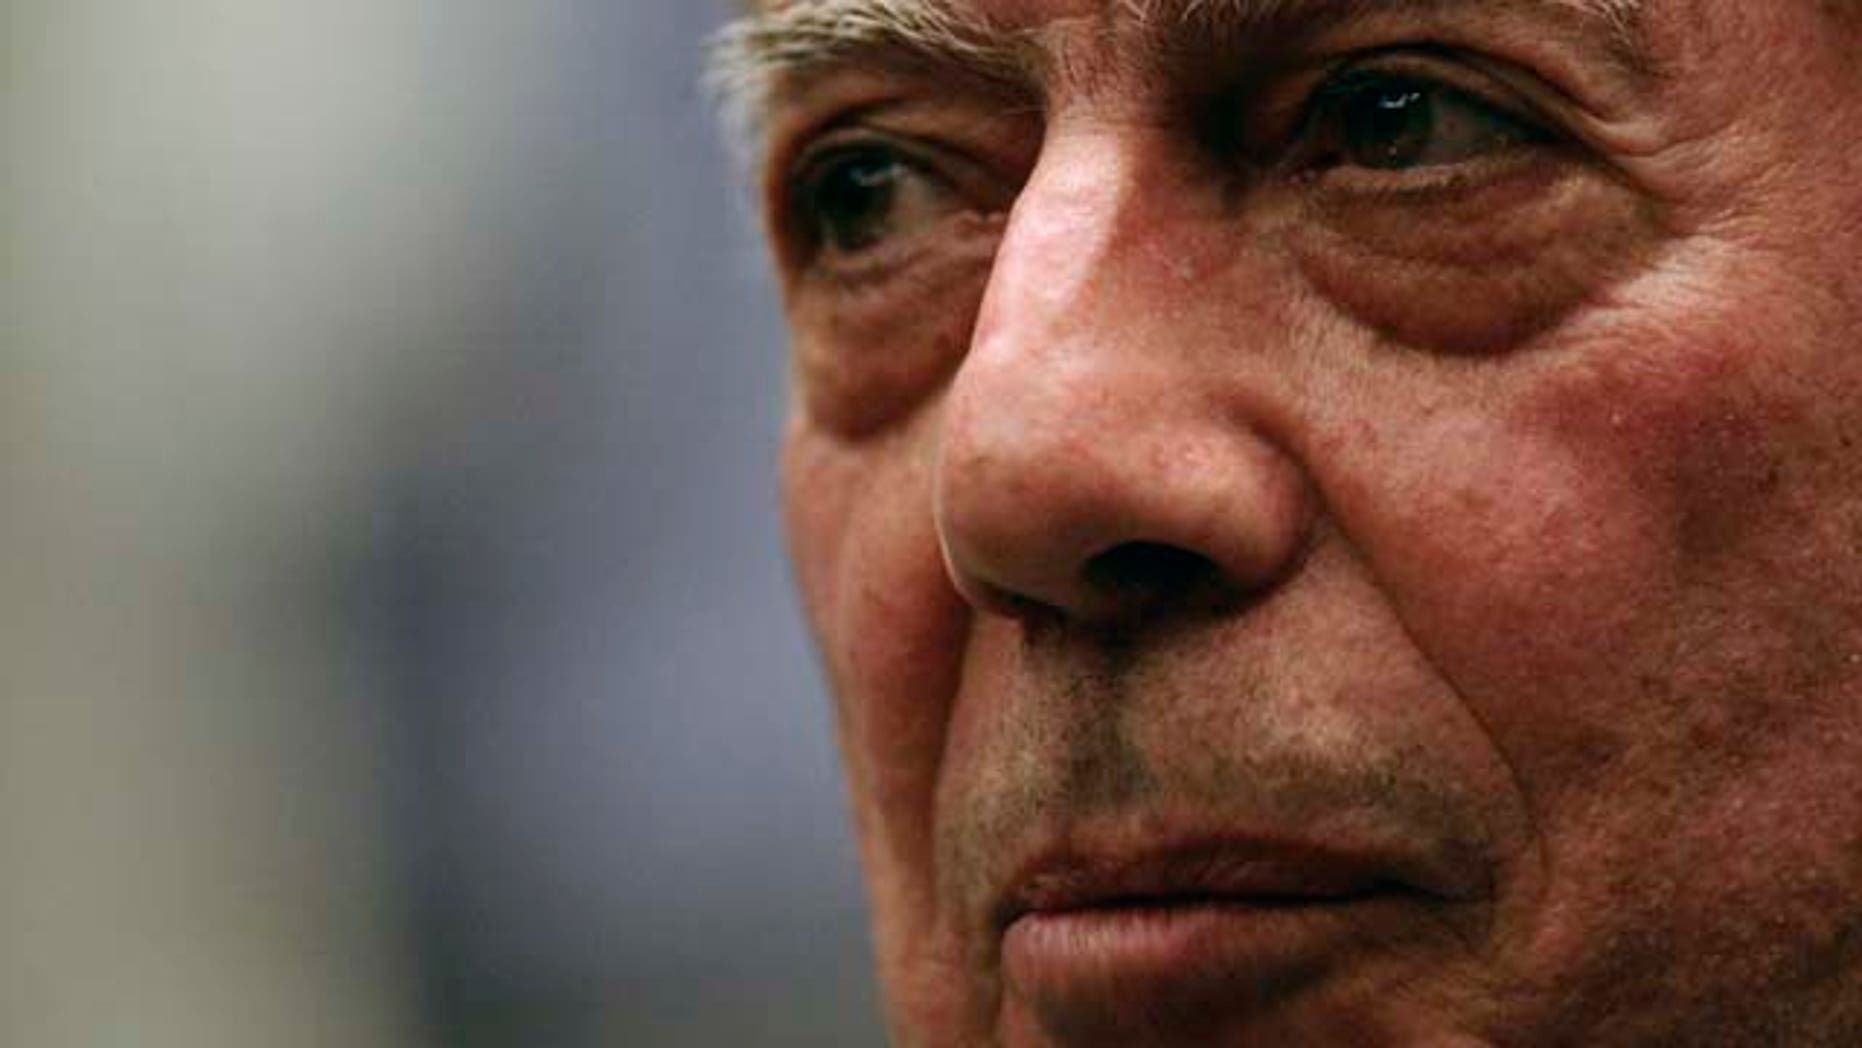 FILE - Peruvian writer Mario Vargas Llosa speaks during a news conference at the International Book Fair in Guadalajara, Mexico, in this Dec. 4, 2009 file photo. Mario Vargas Llosa won the 2010 Nobel Prize in literature Thursday Oct. 7, 2010. (AP Photo/Carlos Jasso, File)